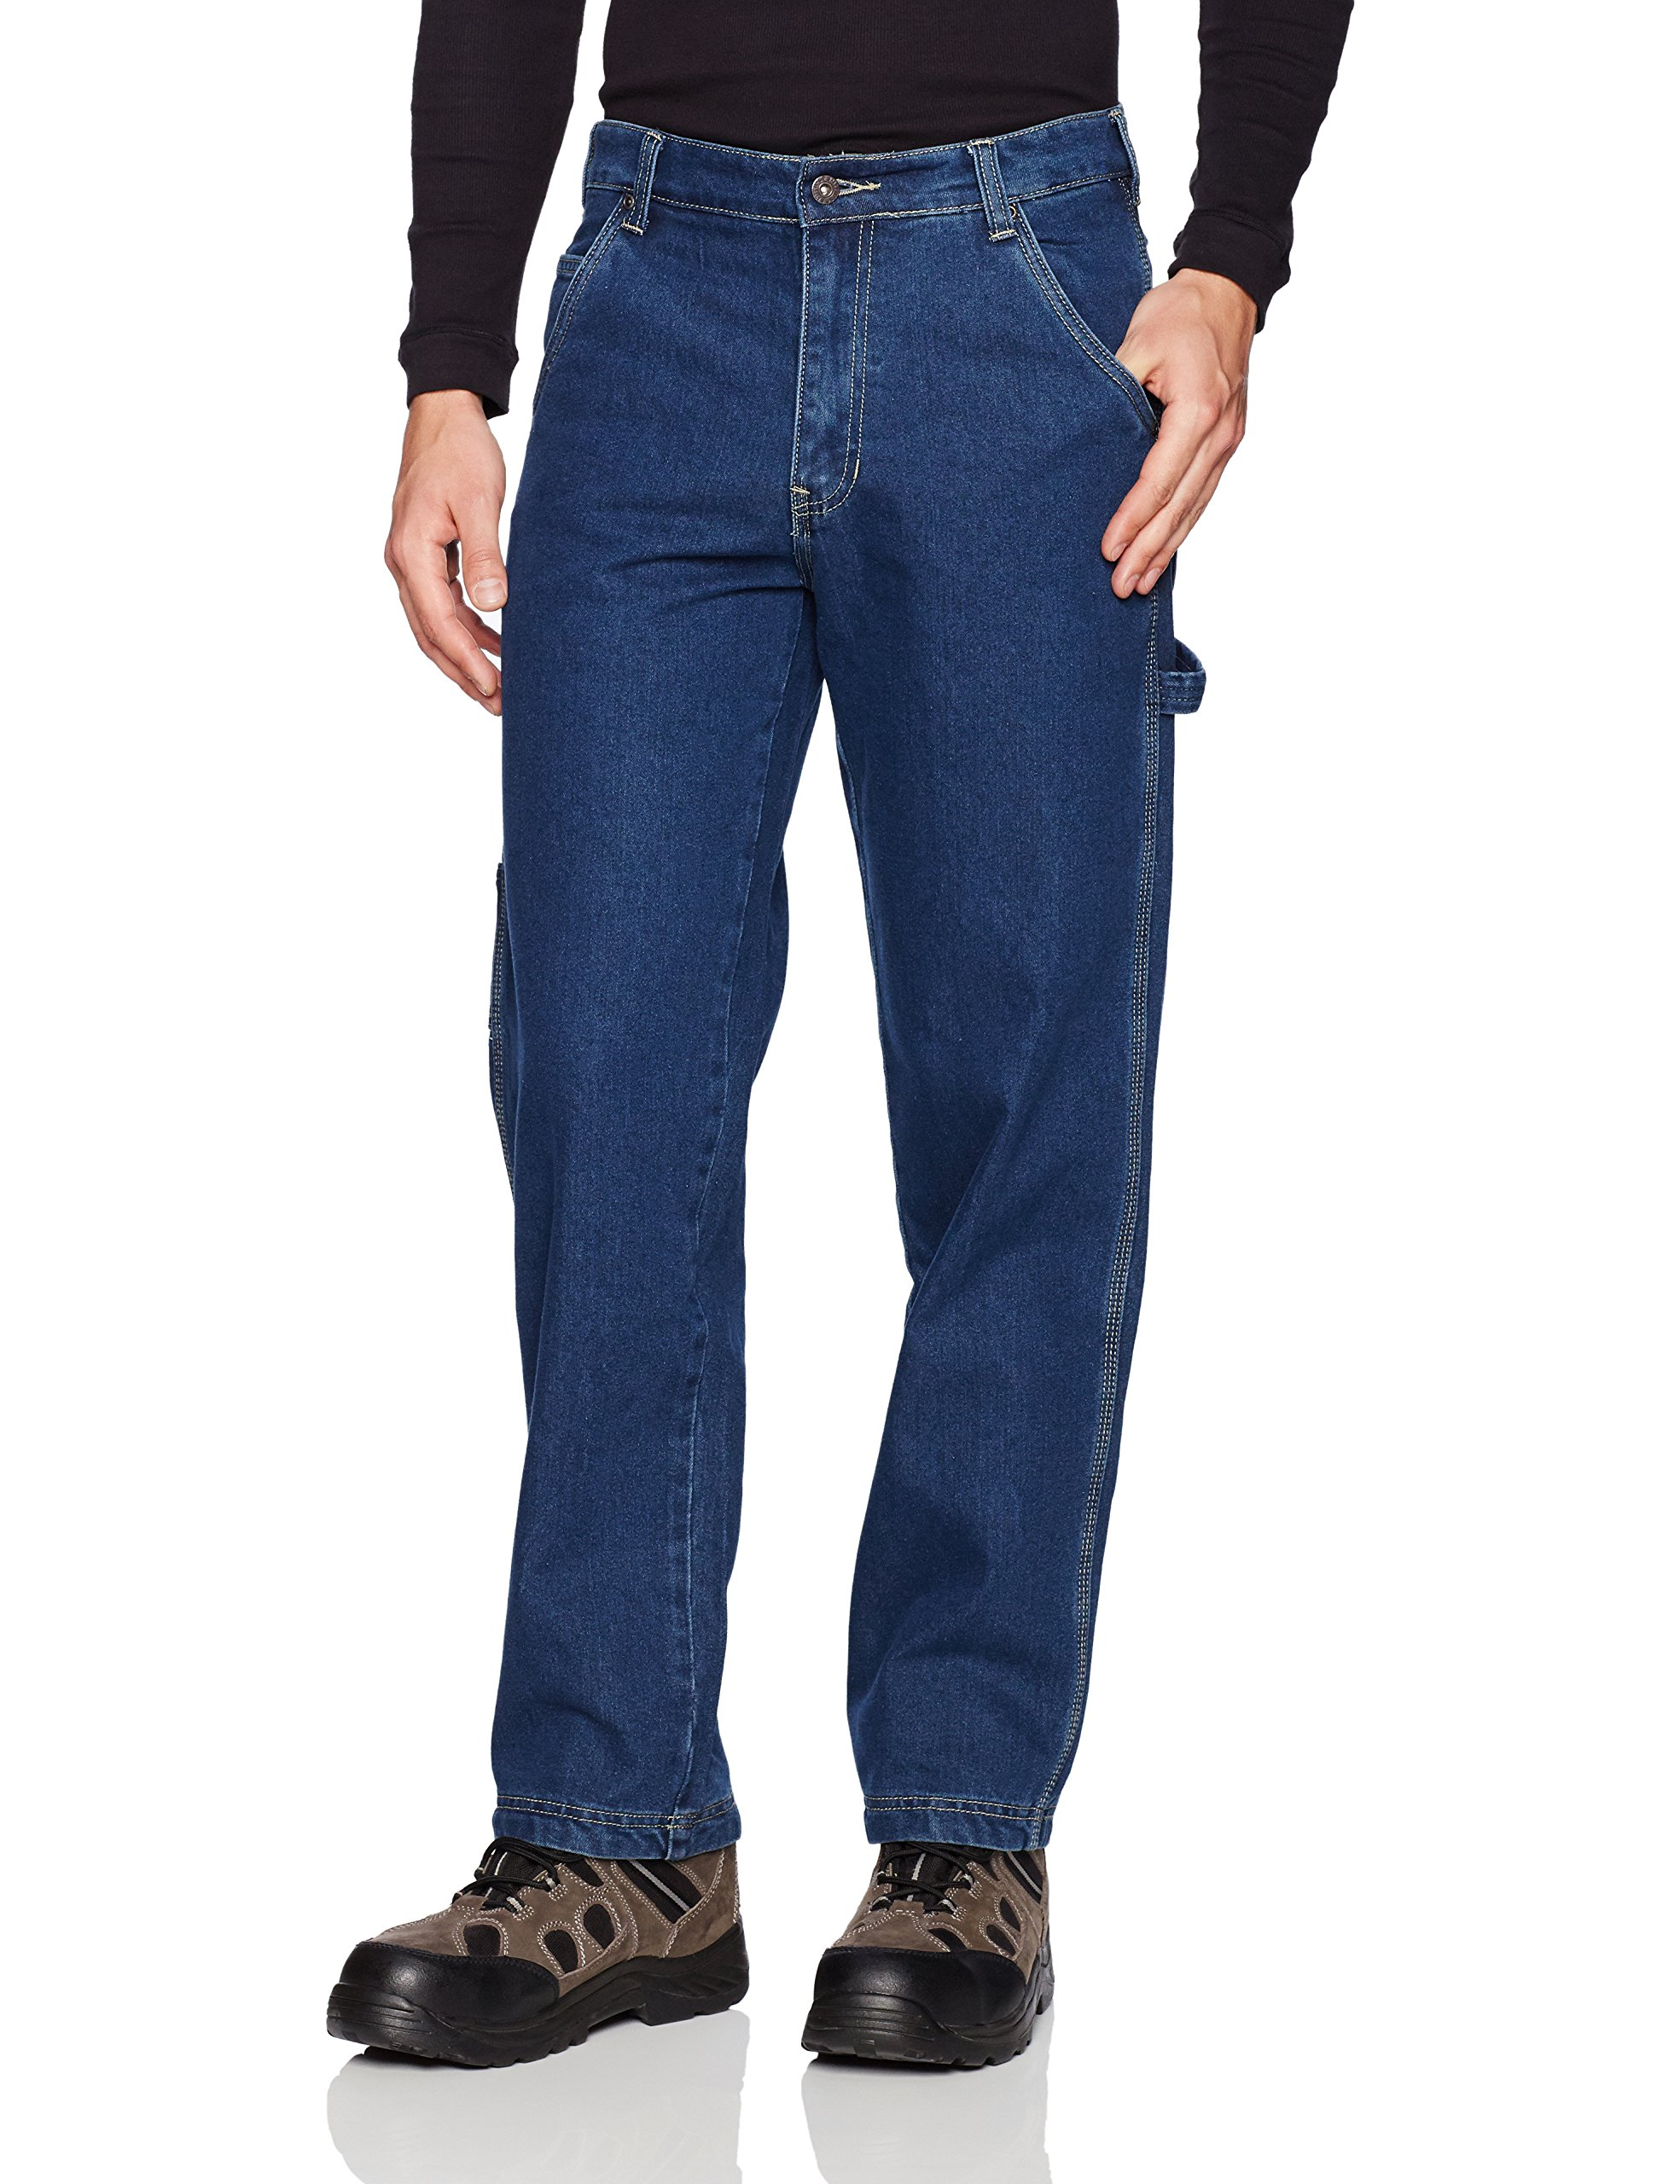 Smith's Workwear Men's Stretch Relaxed Fit Carpenter Jean